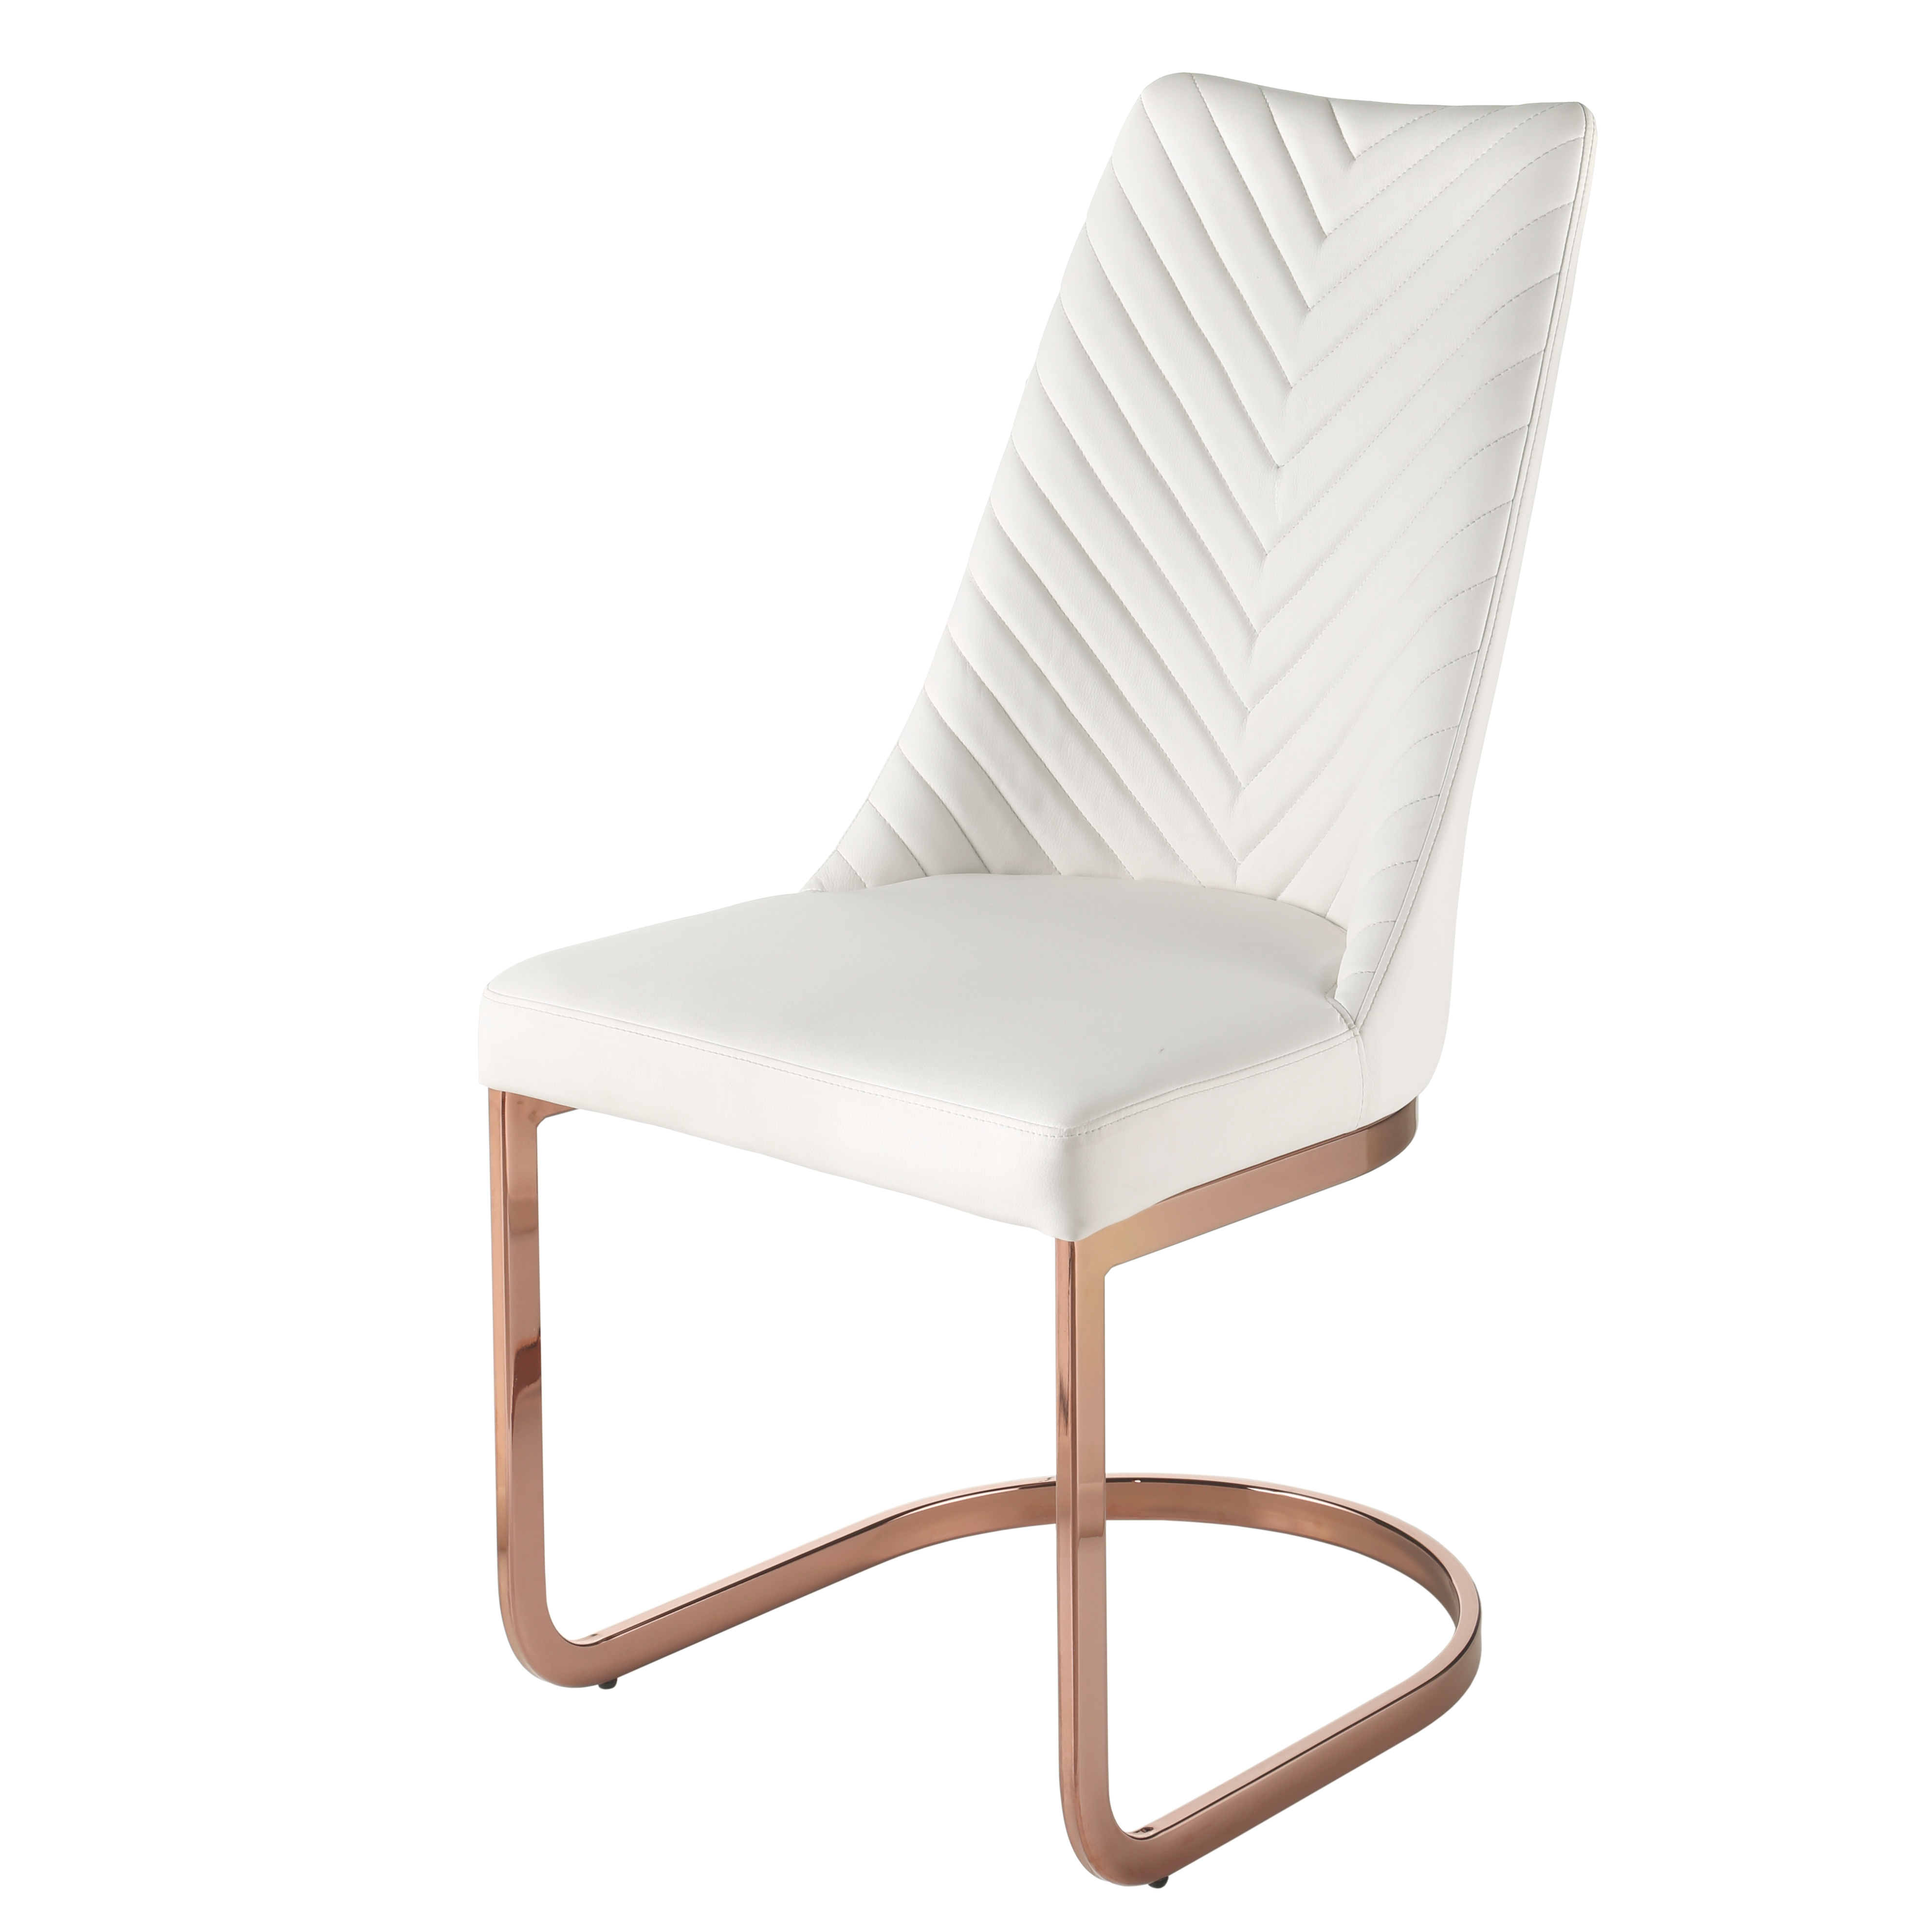 gold dining chairs chair seat covers wedding 3000001 w npd furniture wholesale lifestyle